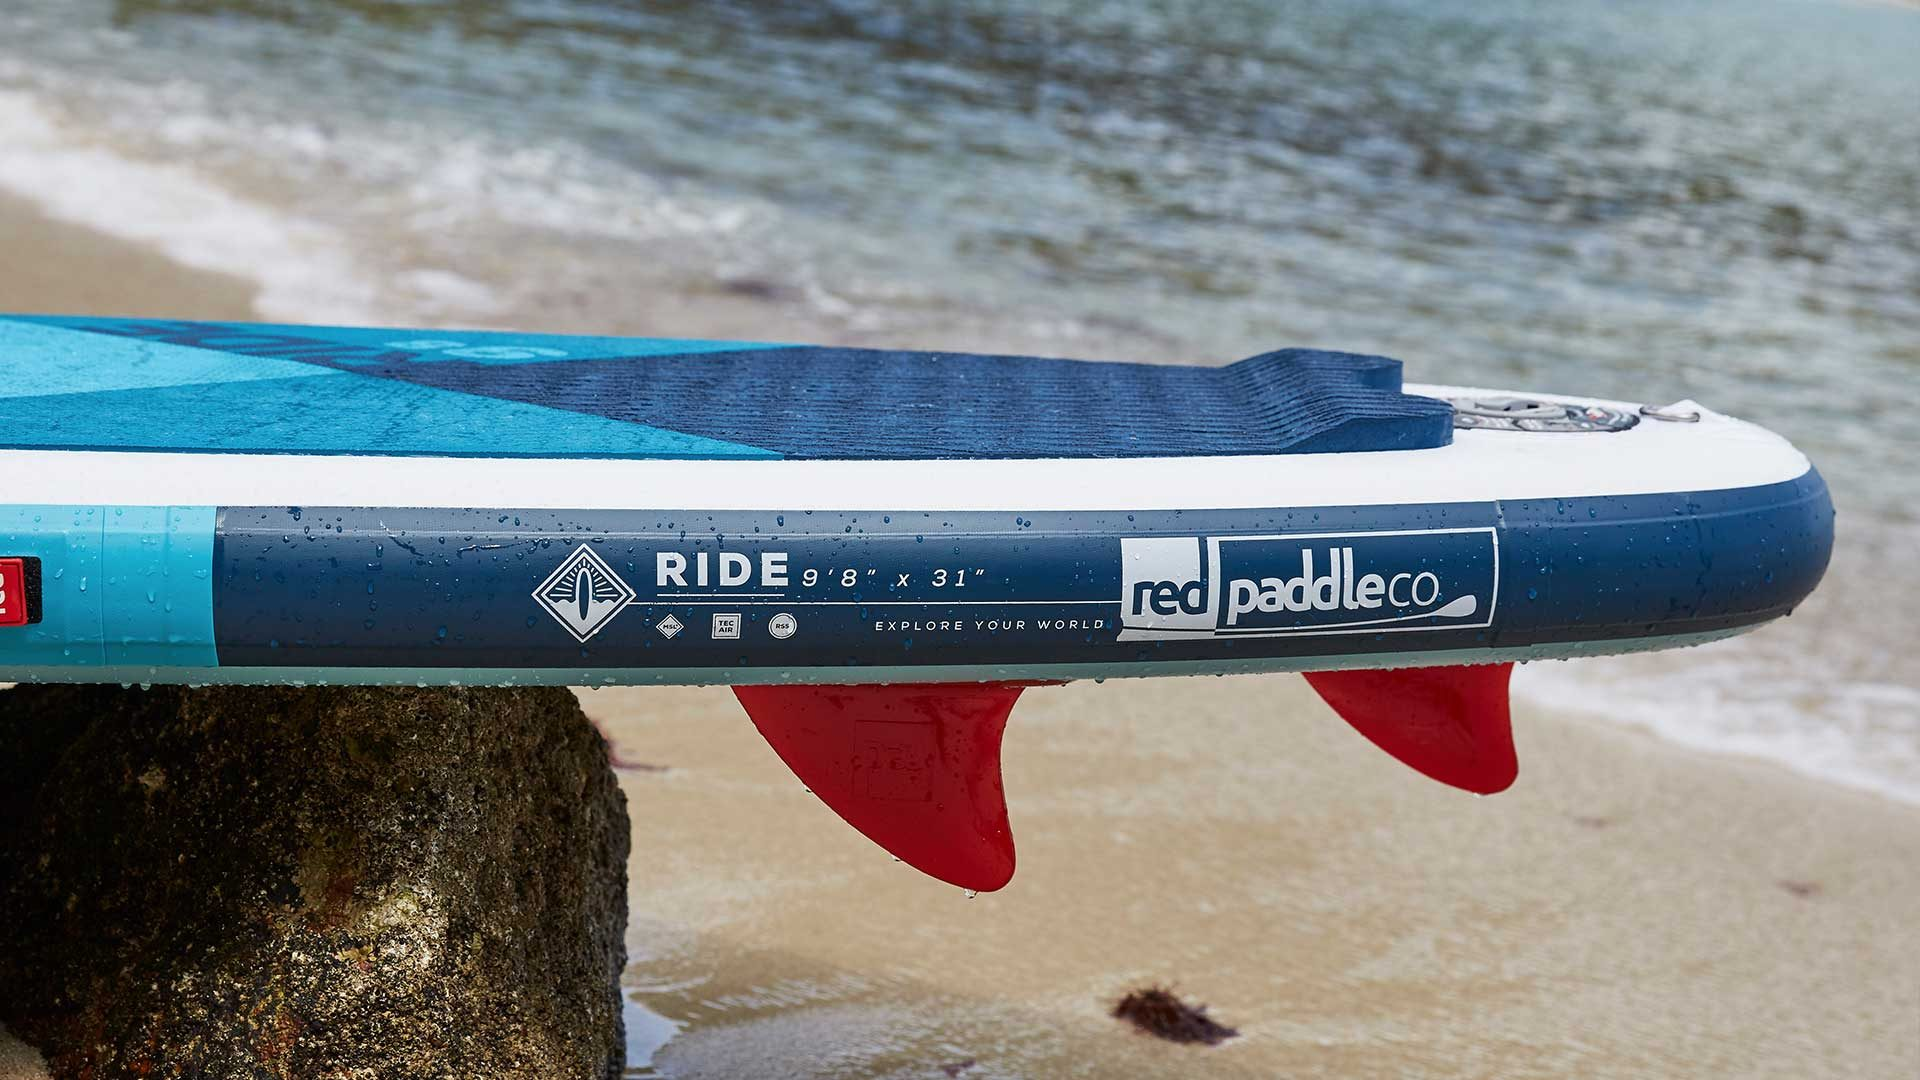 redpaddleco-98-ride-inflatable-paddle-board-desktop-gallery-fins